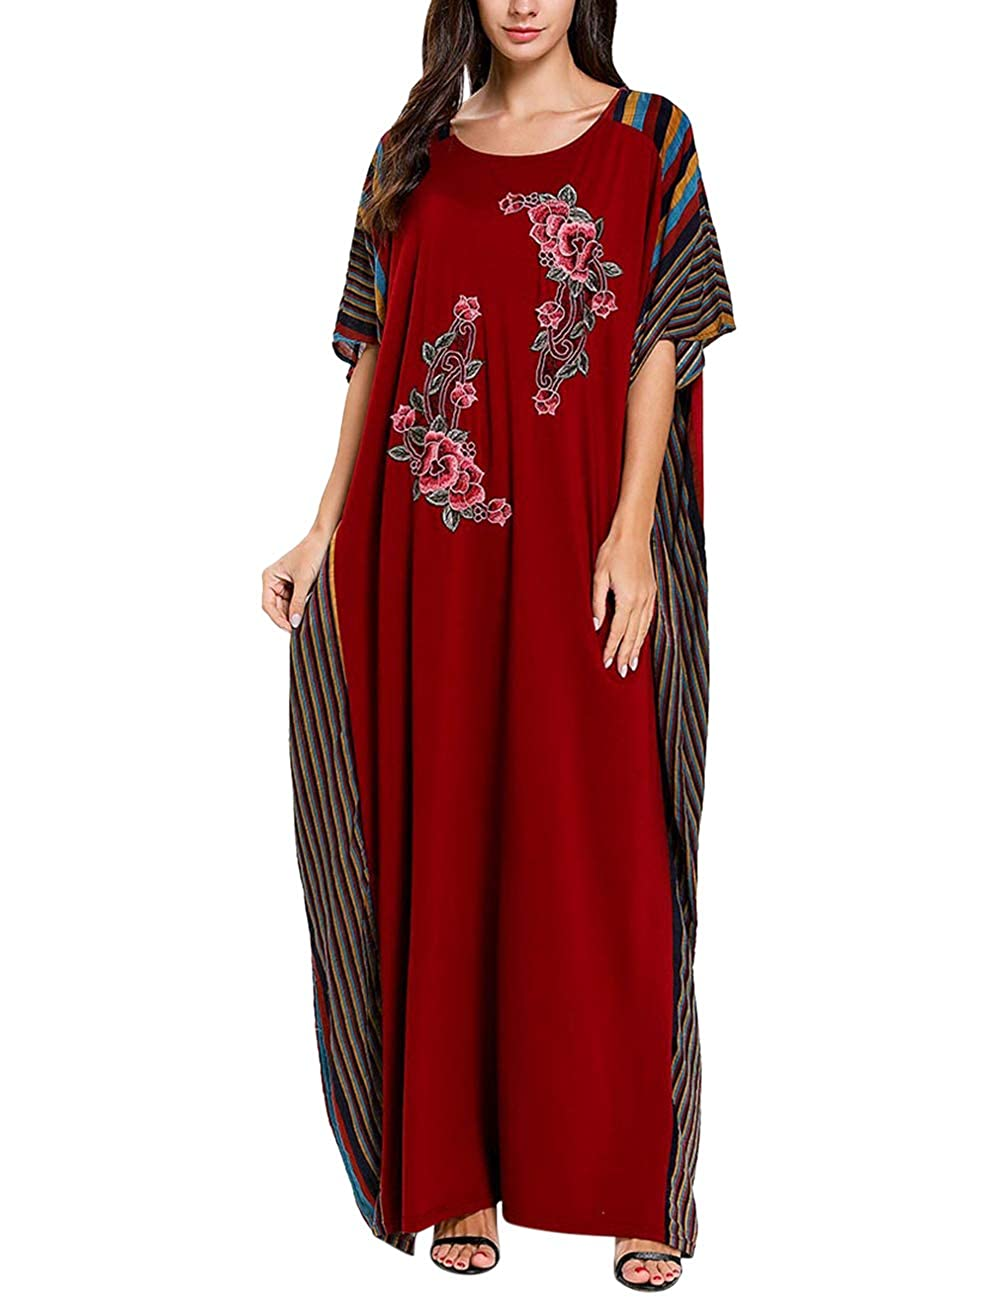 Zhhlinyuan Kaftans Embroidery Caftan Dress Plus Size Ladies Long Dress Cover Up Red